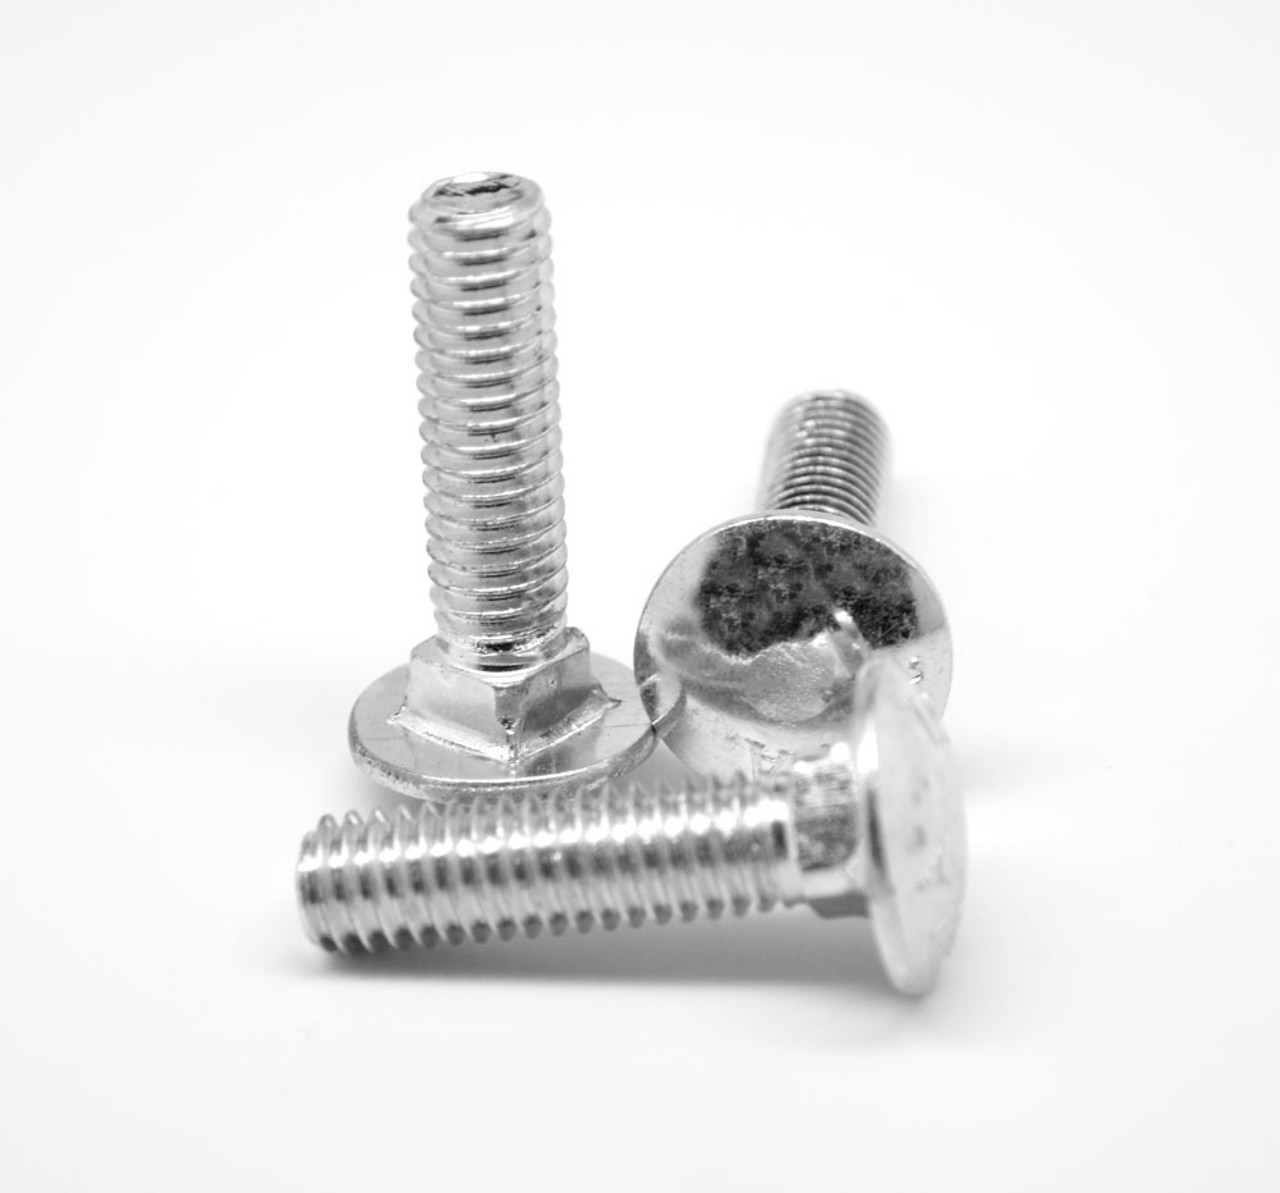 """#10-24 x 1 1/2"""" (FT) Coarse Thread Carriage Bolt Stainless Steel 18-8"""